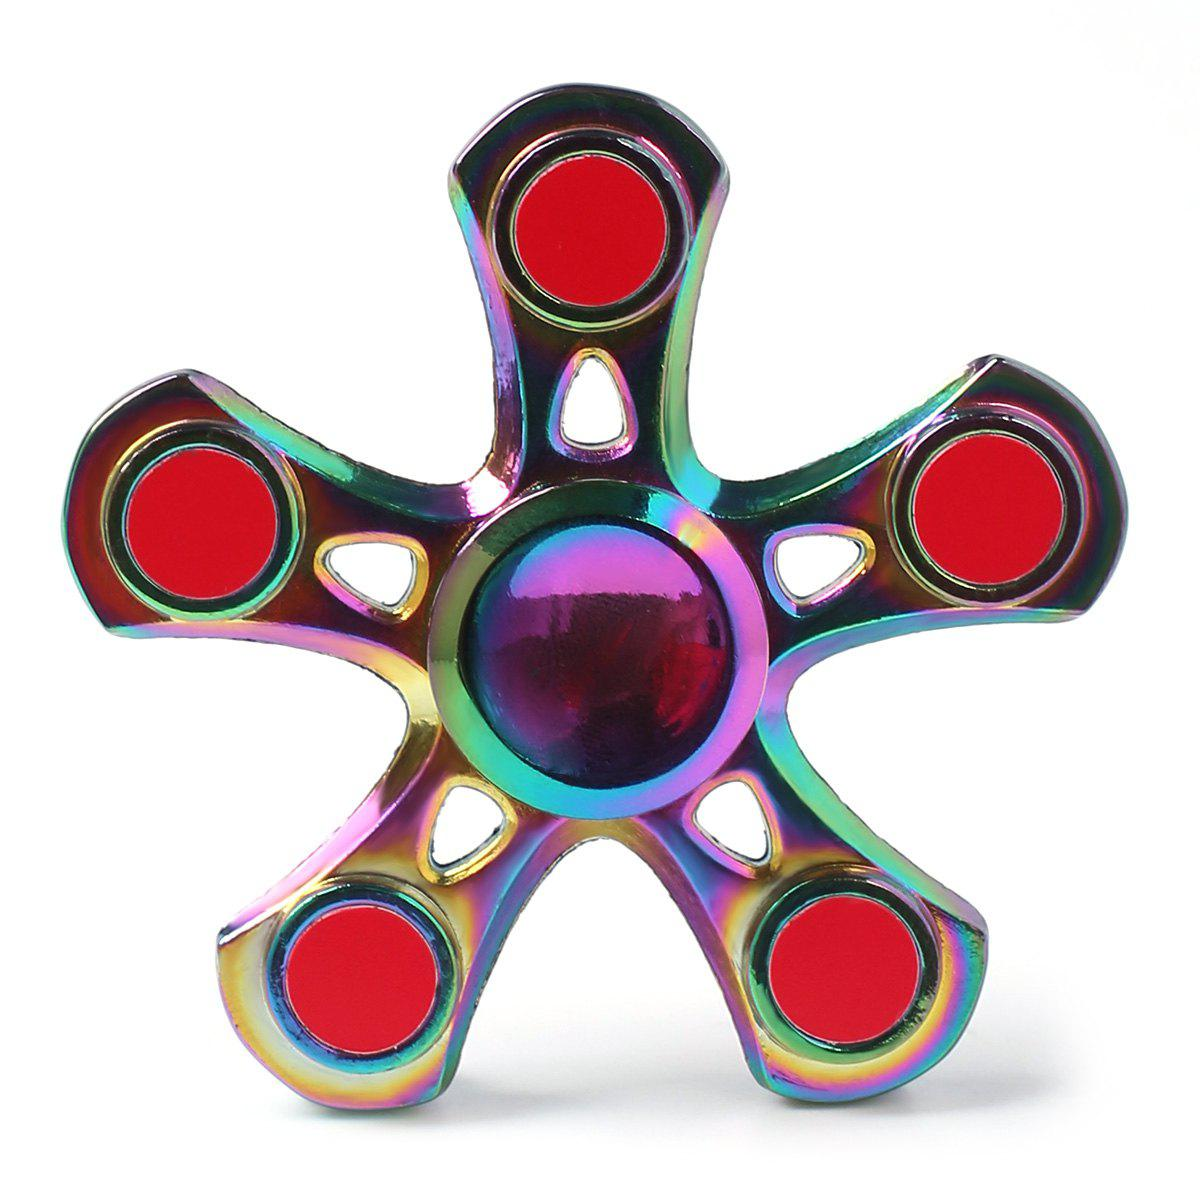 Zinc Alloy Star Stress Relieve Finger Fidget Spinner - coloré 7*7*1.5CM